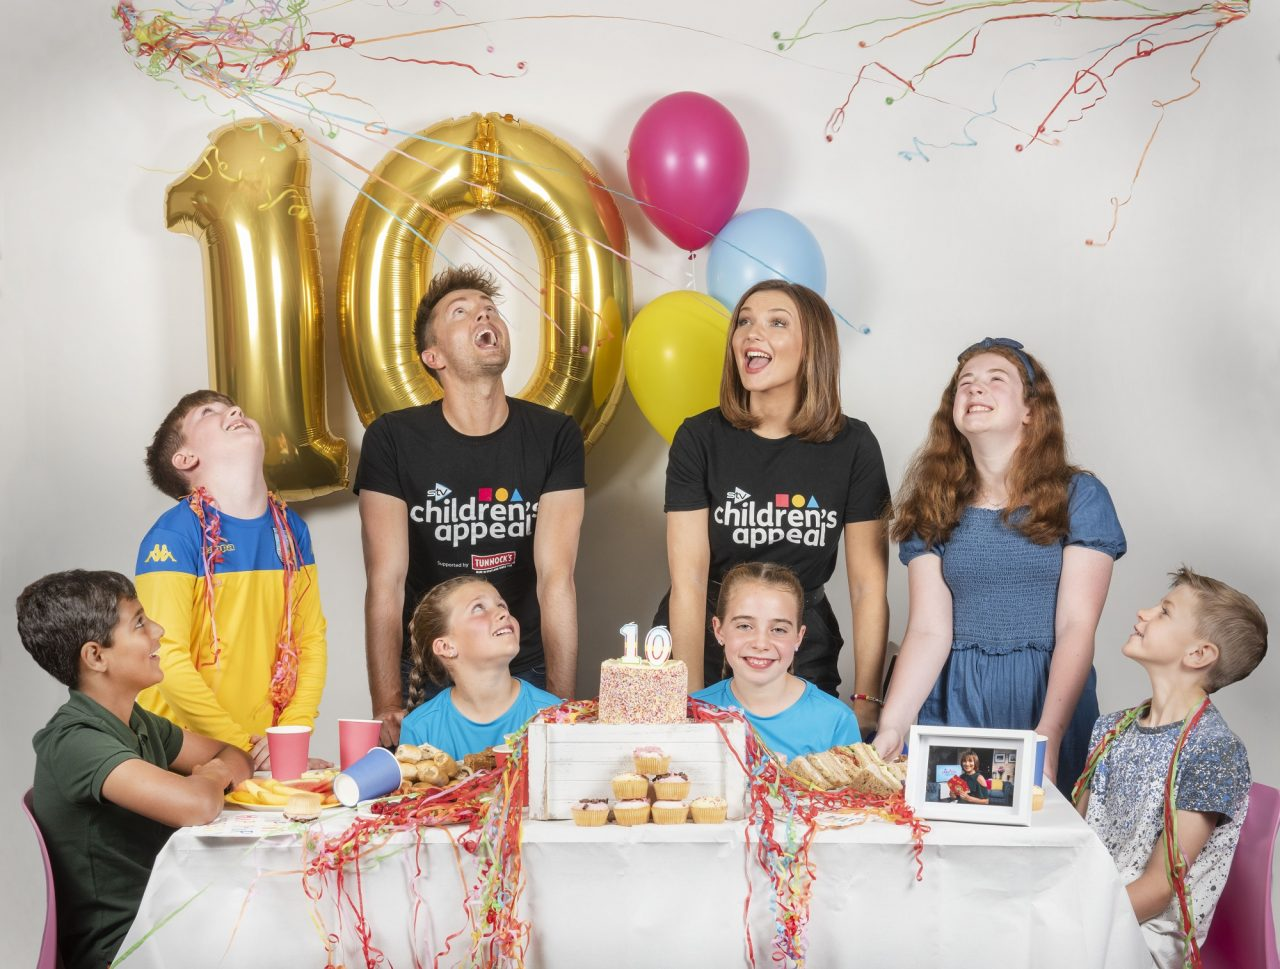 Stars mark STV Children's Appeal's 10th birthday by taking on variety of ten-themed challenges